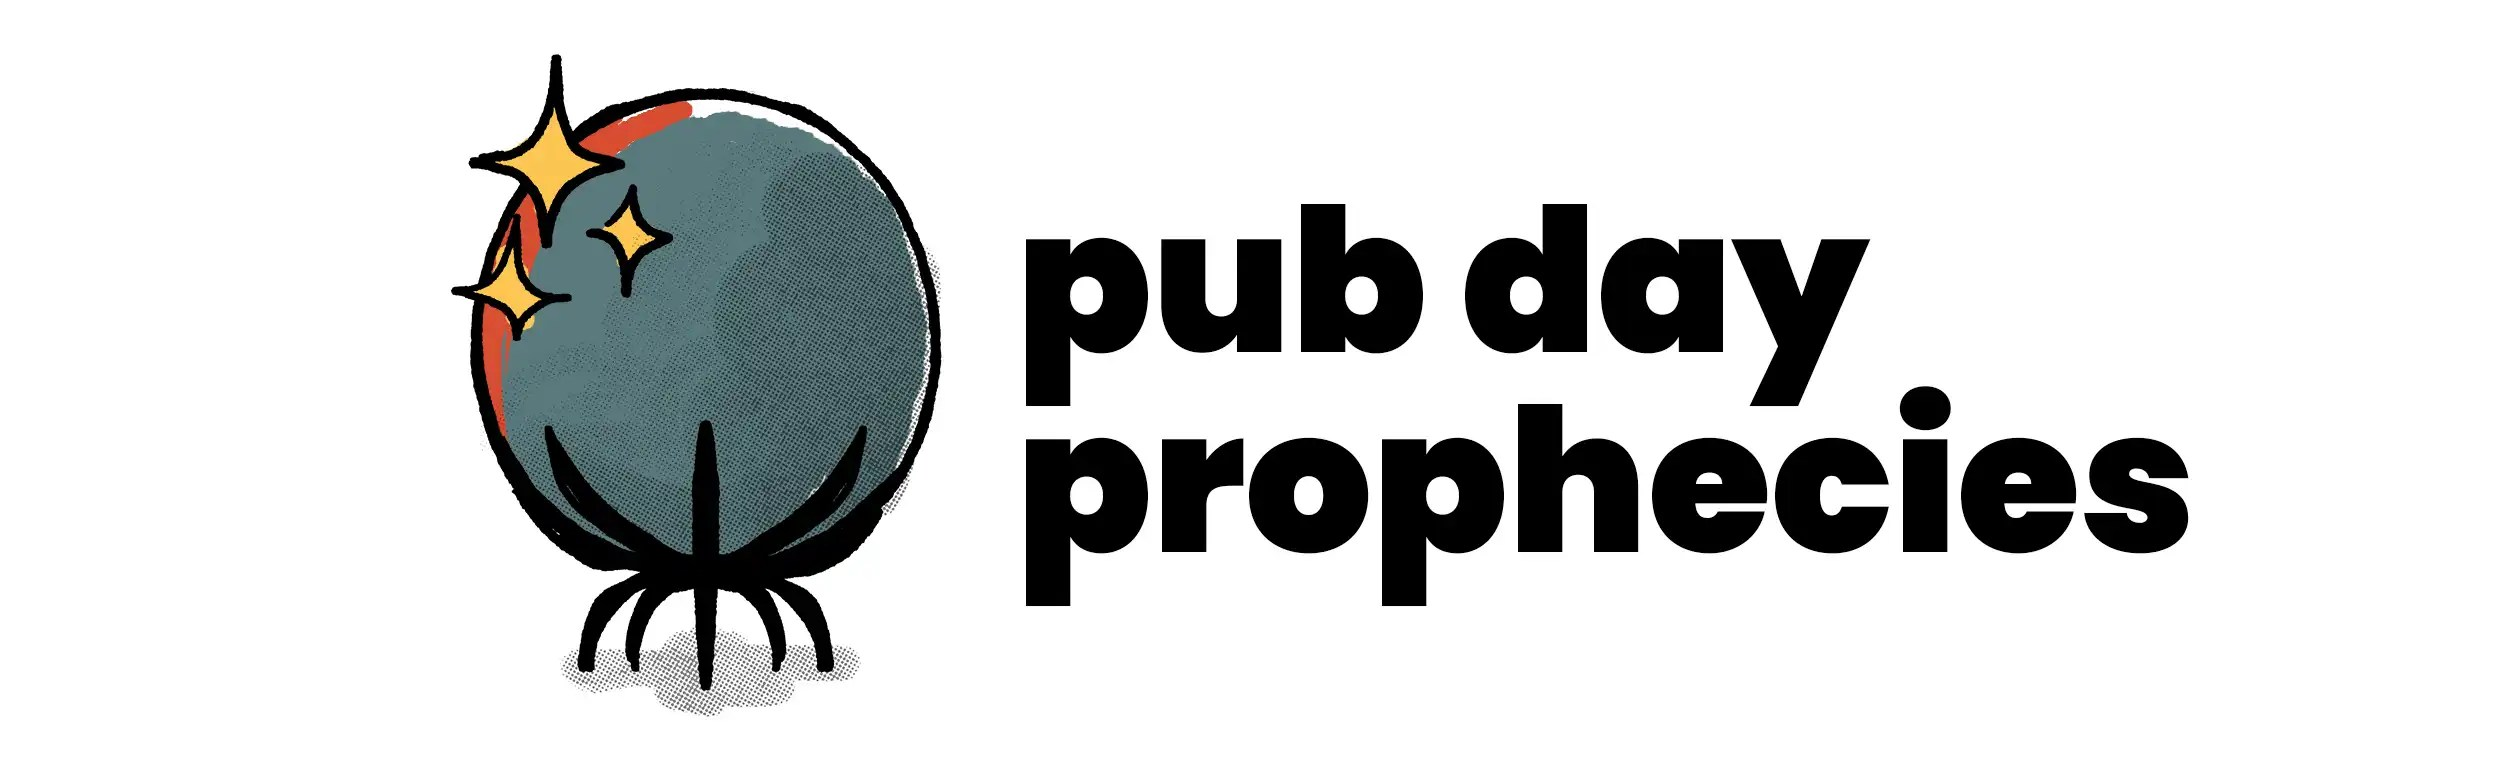 Pub Day Prophecies banner, depicting a blue crystal ball with yellow sparkles